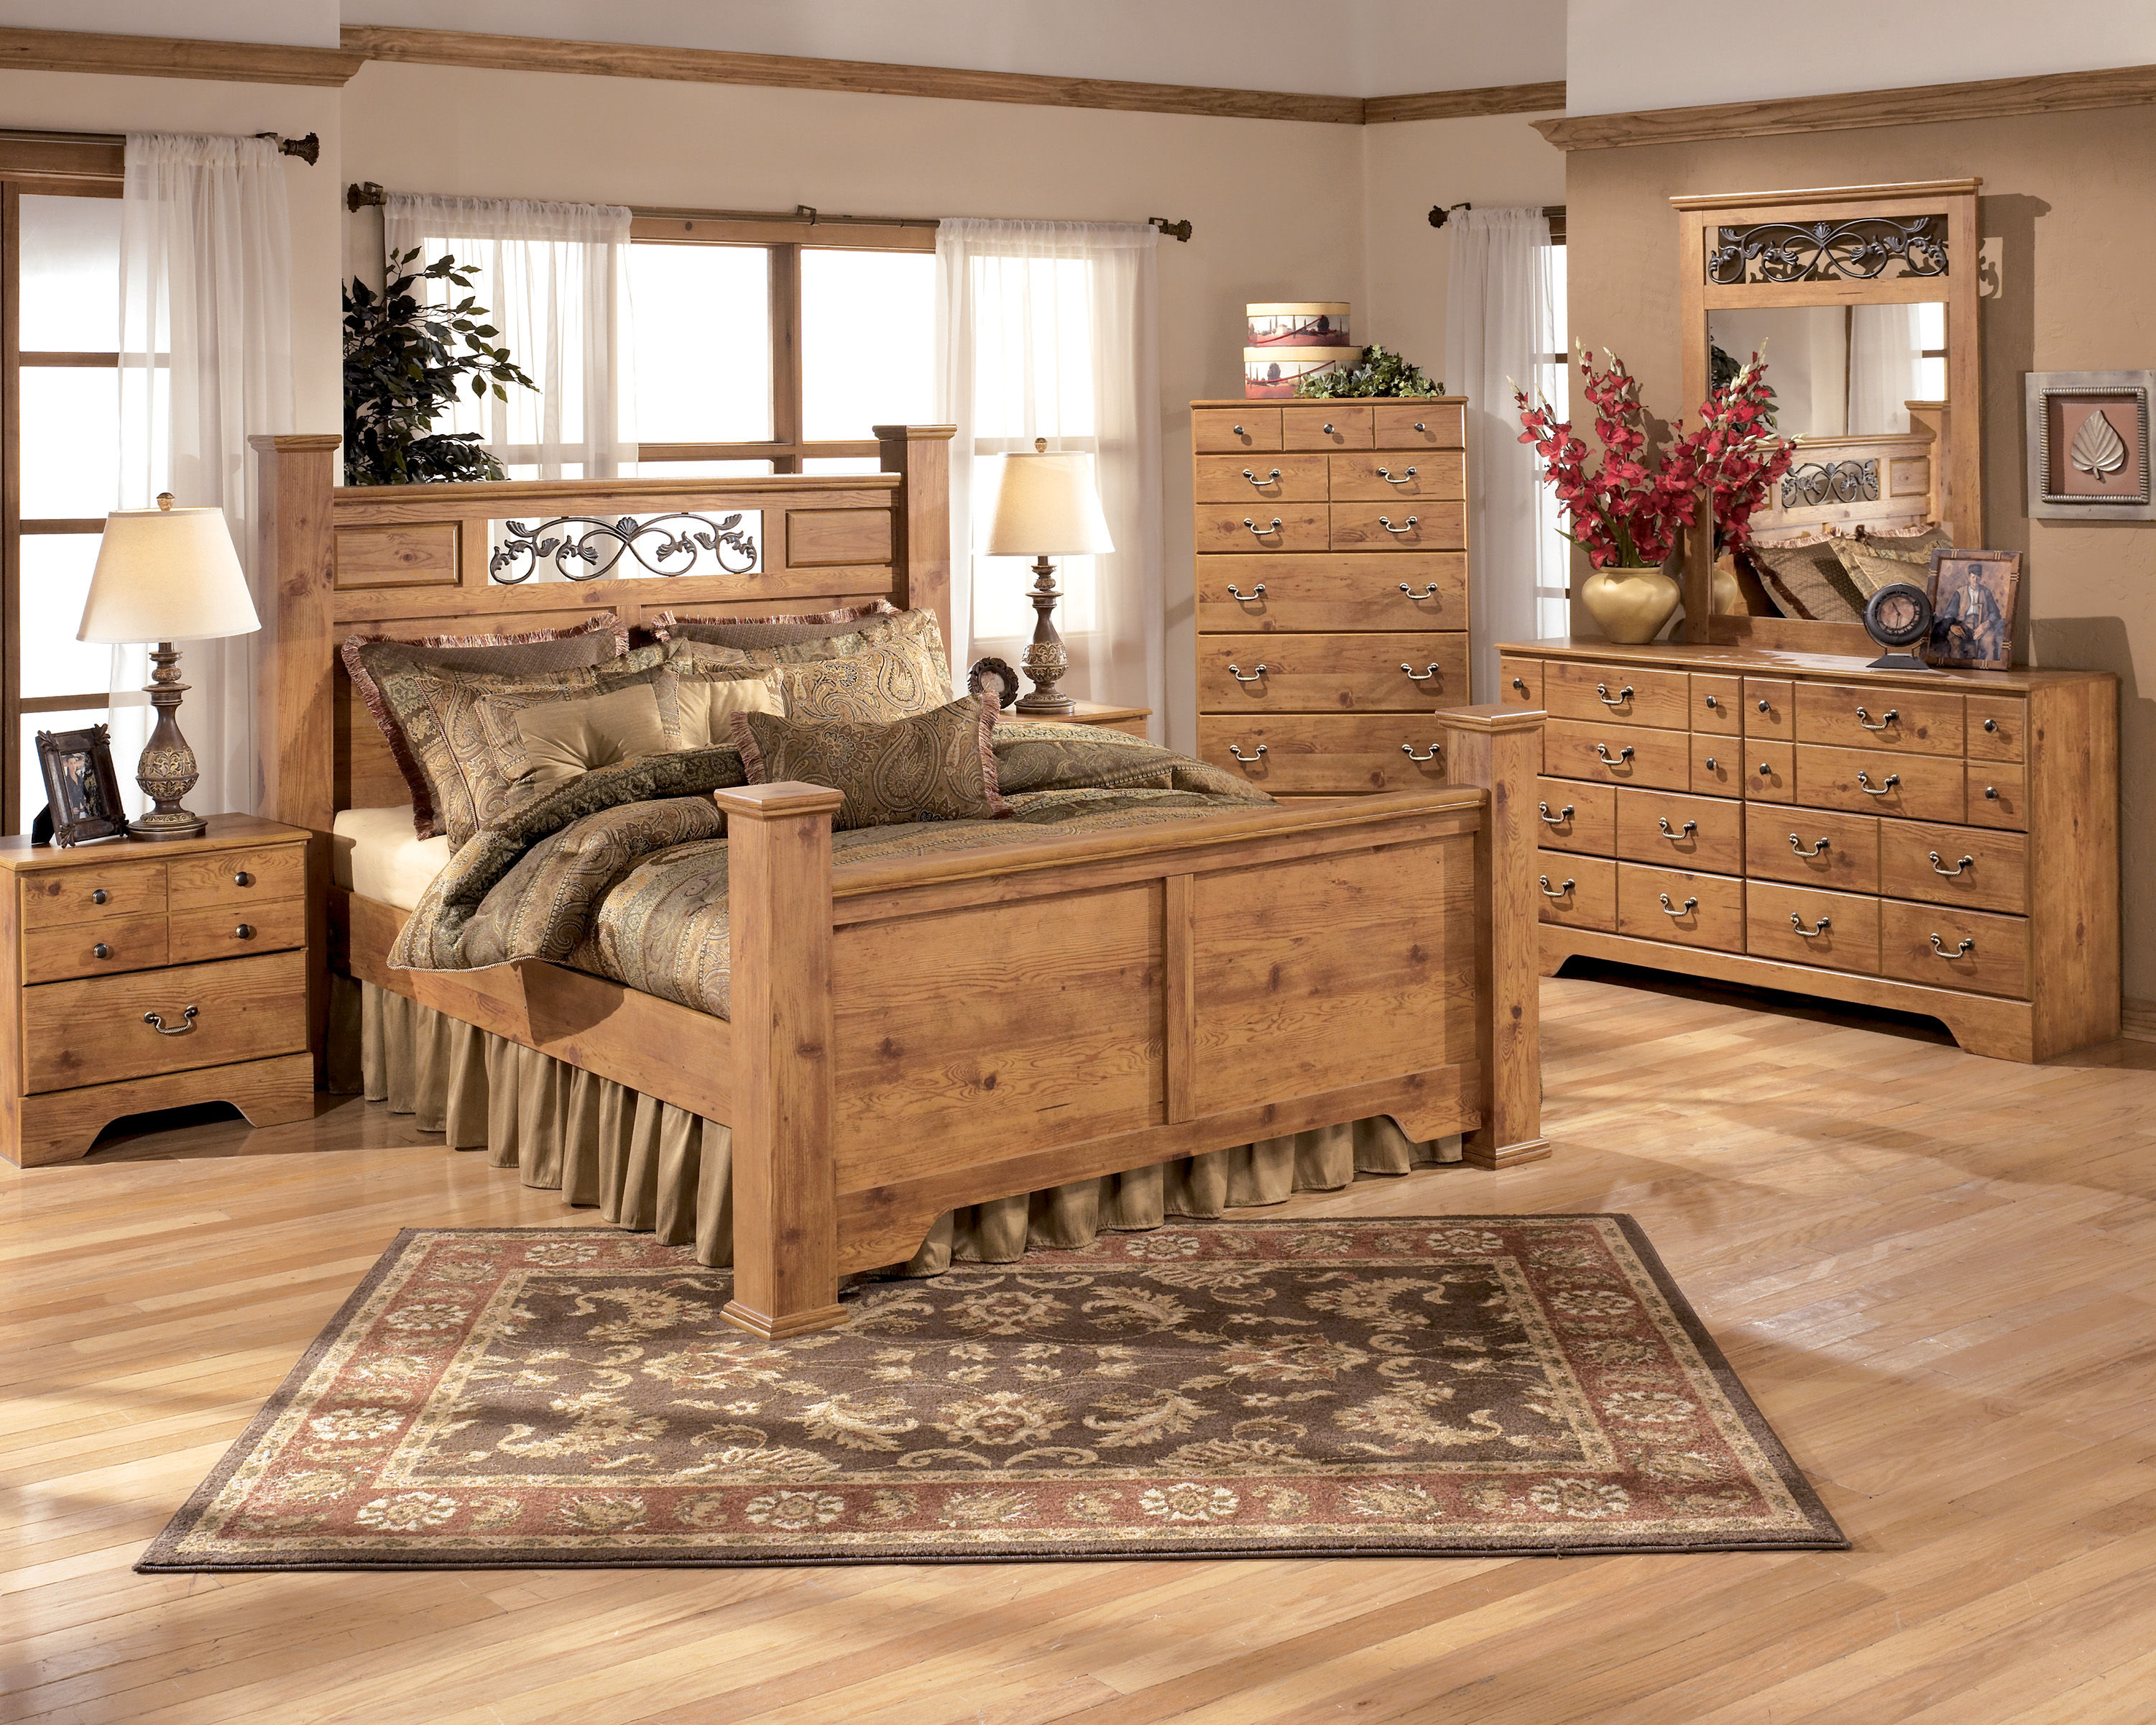 King poster bed set -  Set W King Poster Bed Click To Love Itclick To Enlarge